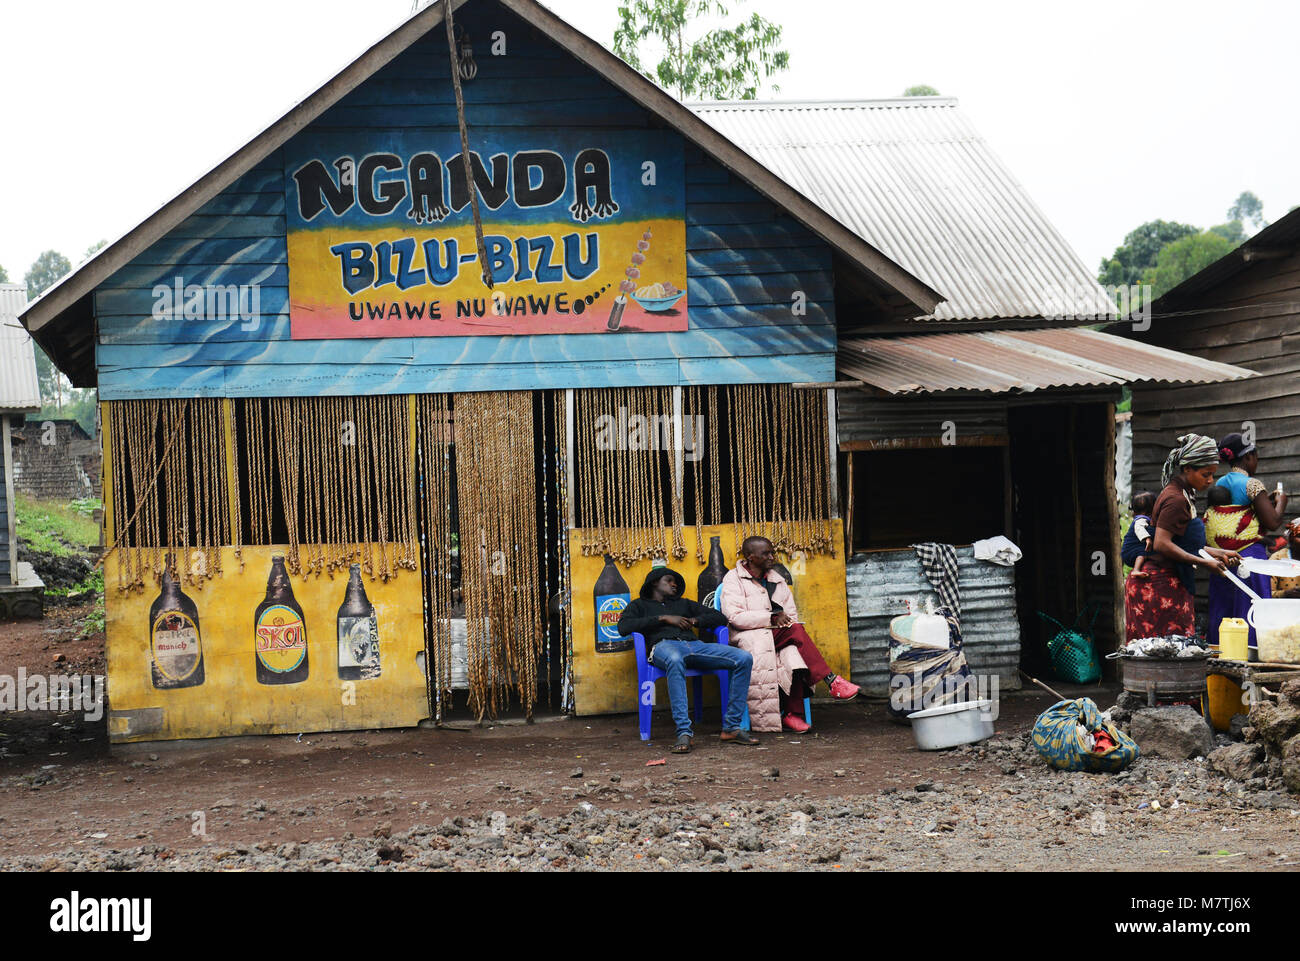 A local bar in the outskirts of Goma. - Stock Image